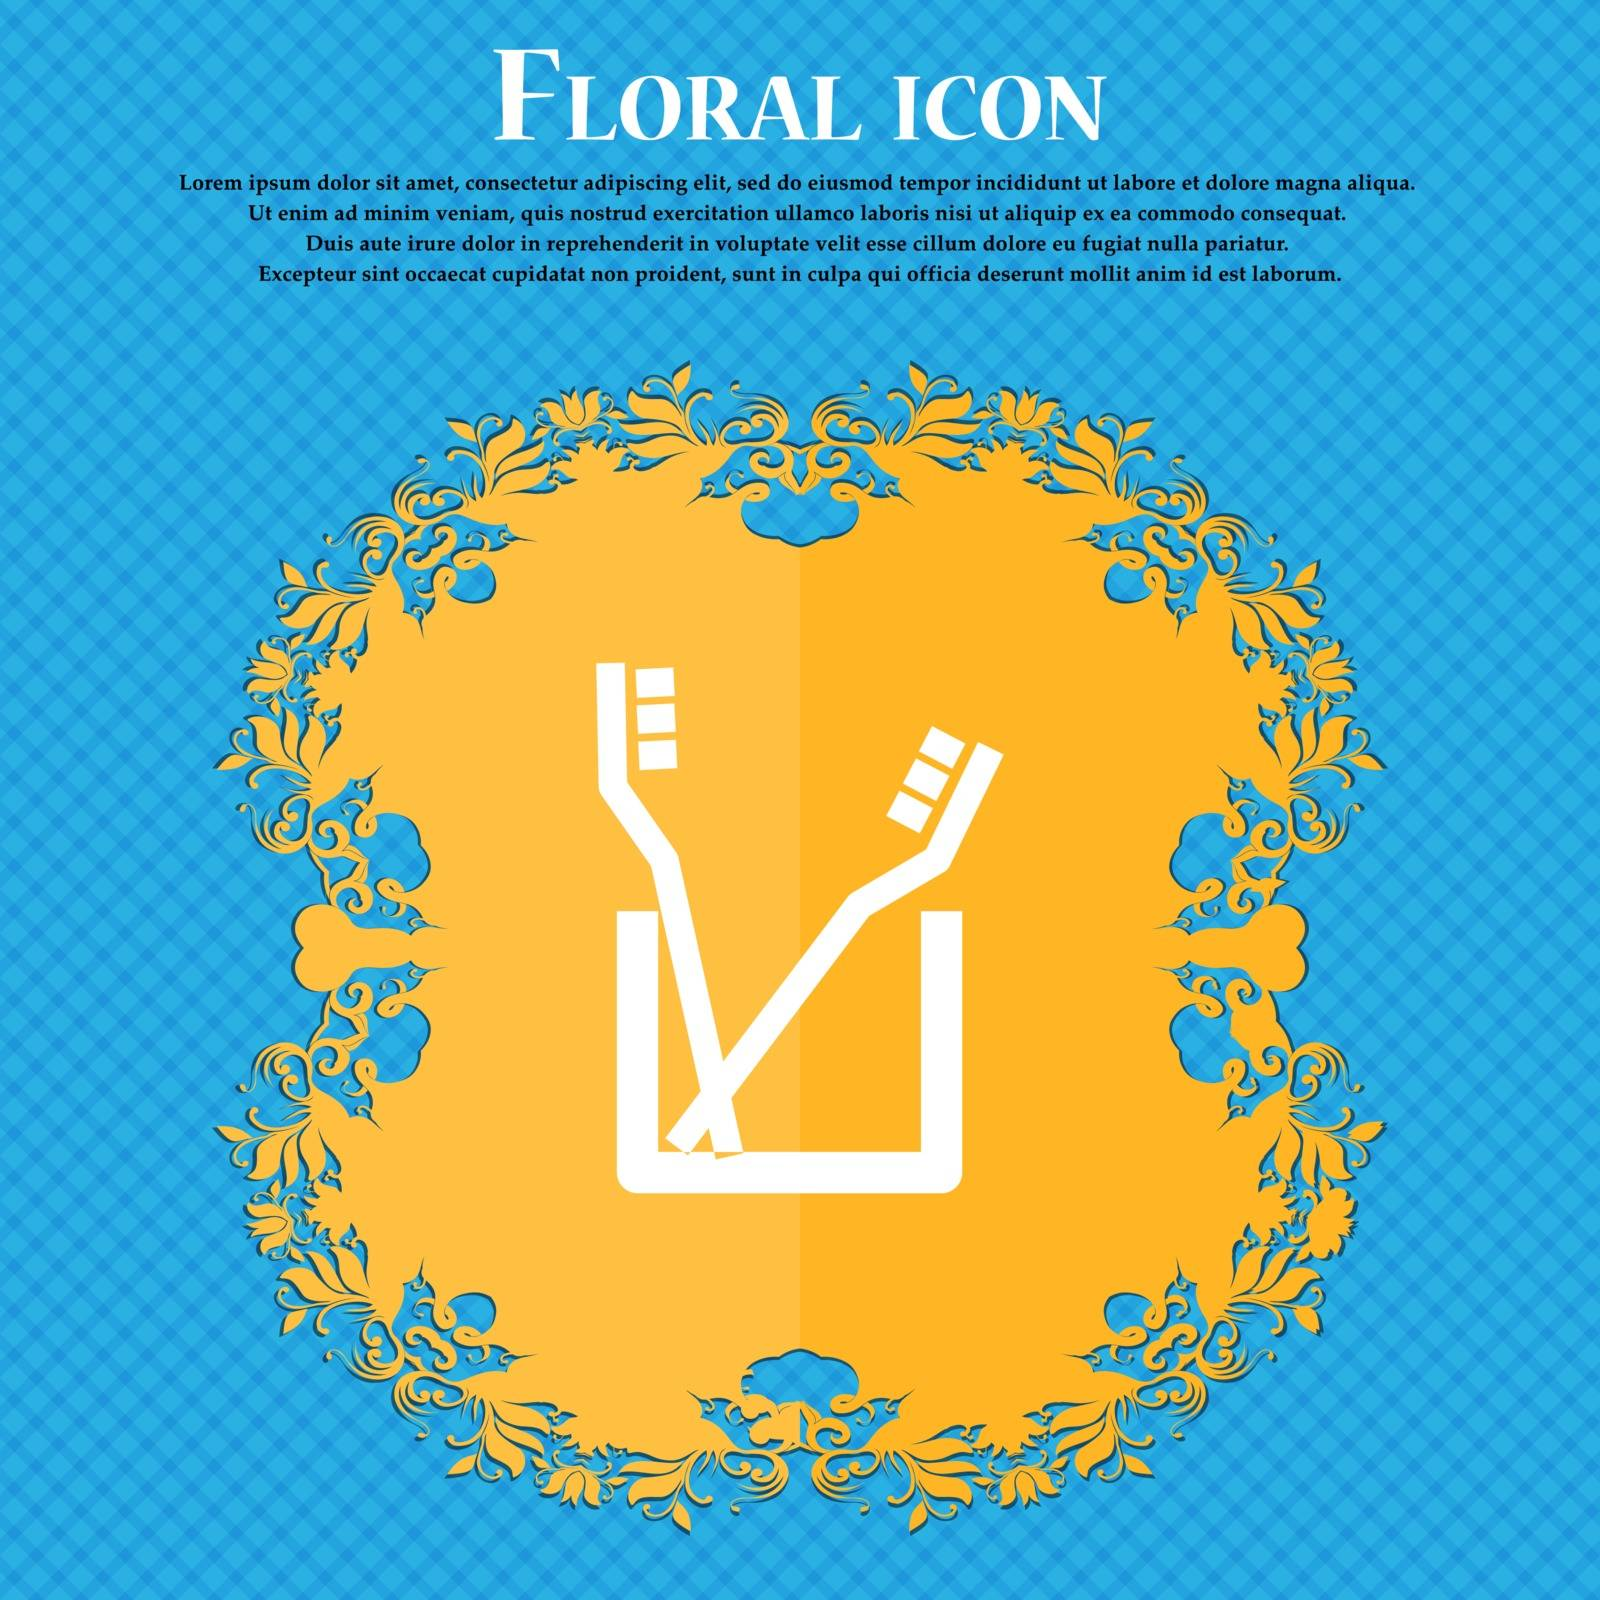 Toothbrush icon sign. Floral flat design on a blue abstract background with place for your text. Vector illustration